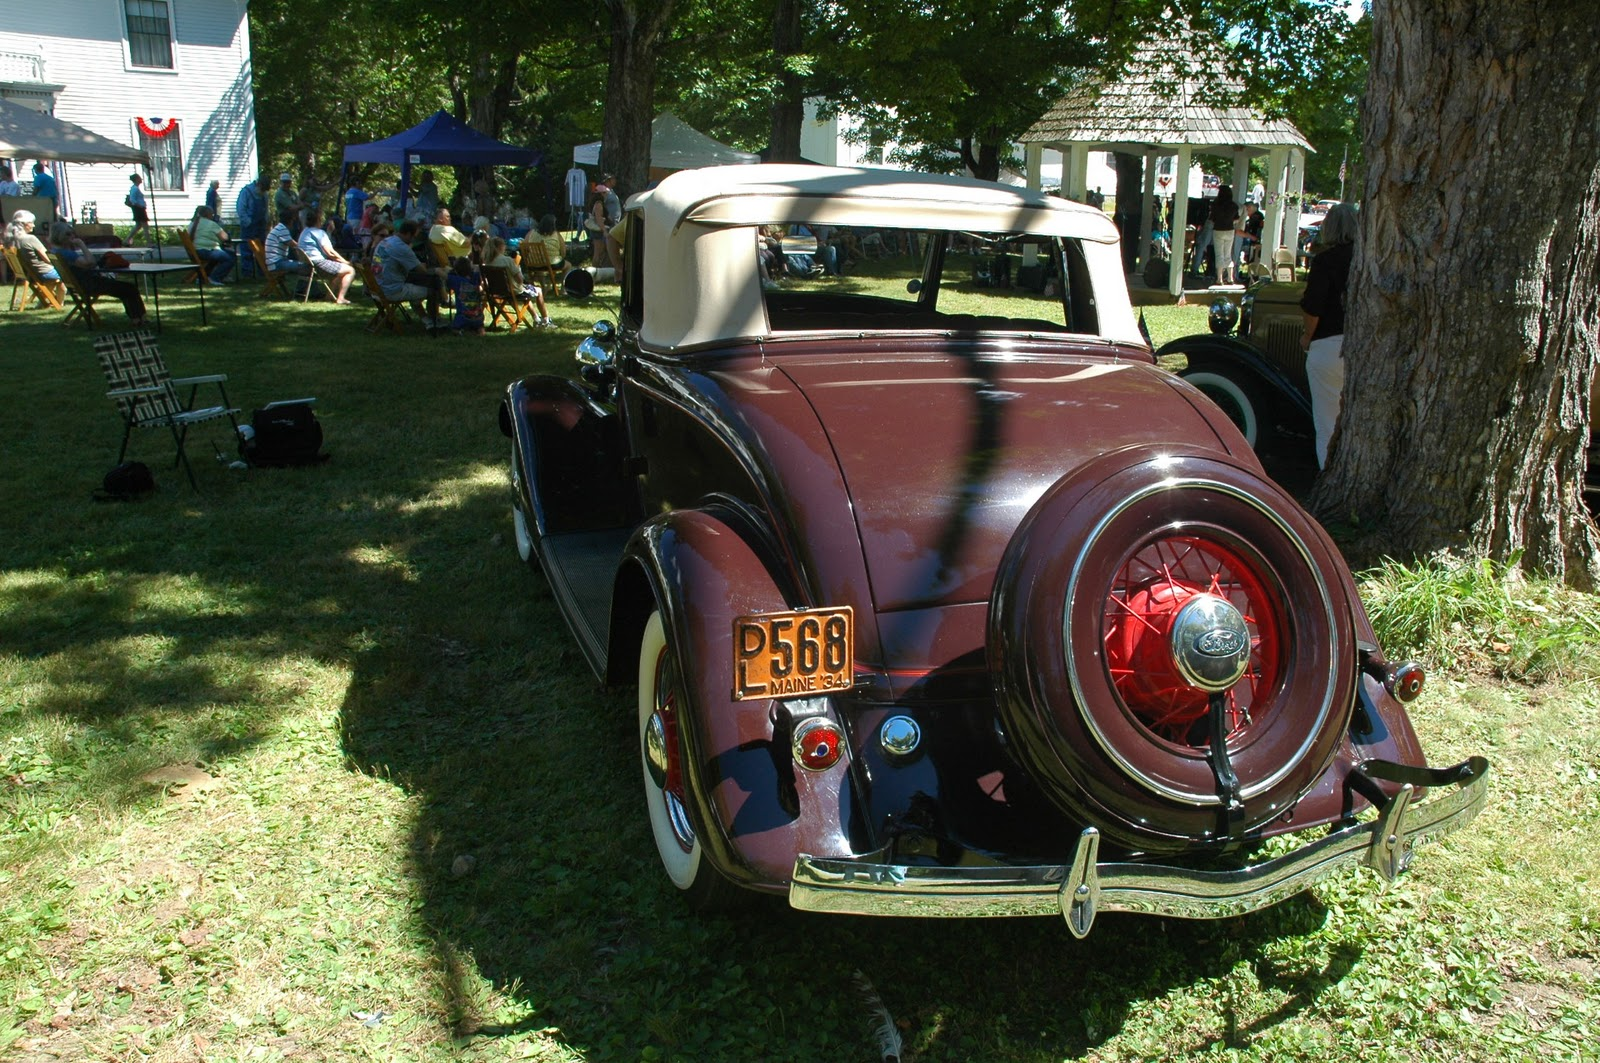 Antique Cars Archives - MARY BYROM FINE ART